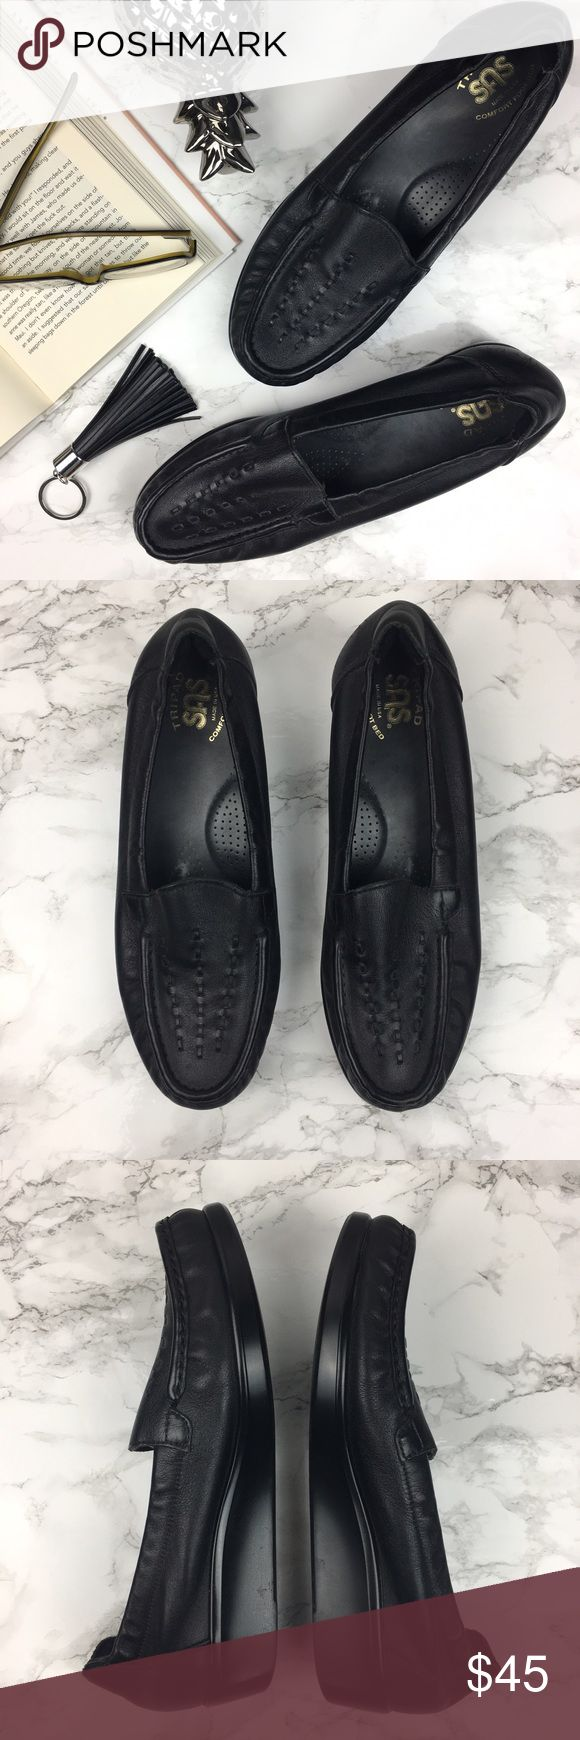 SAS Tripad Comfort Black Pebbled Leather Loafers Super comfortable shoes. Weave detail on front. On the back heel of left shoe it has a few light scratches, as pictured. SAS Shoes Flats & Loafers